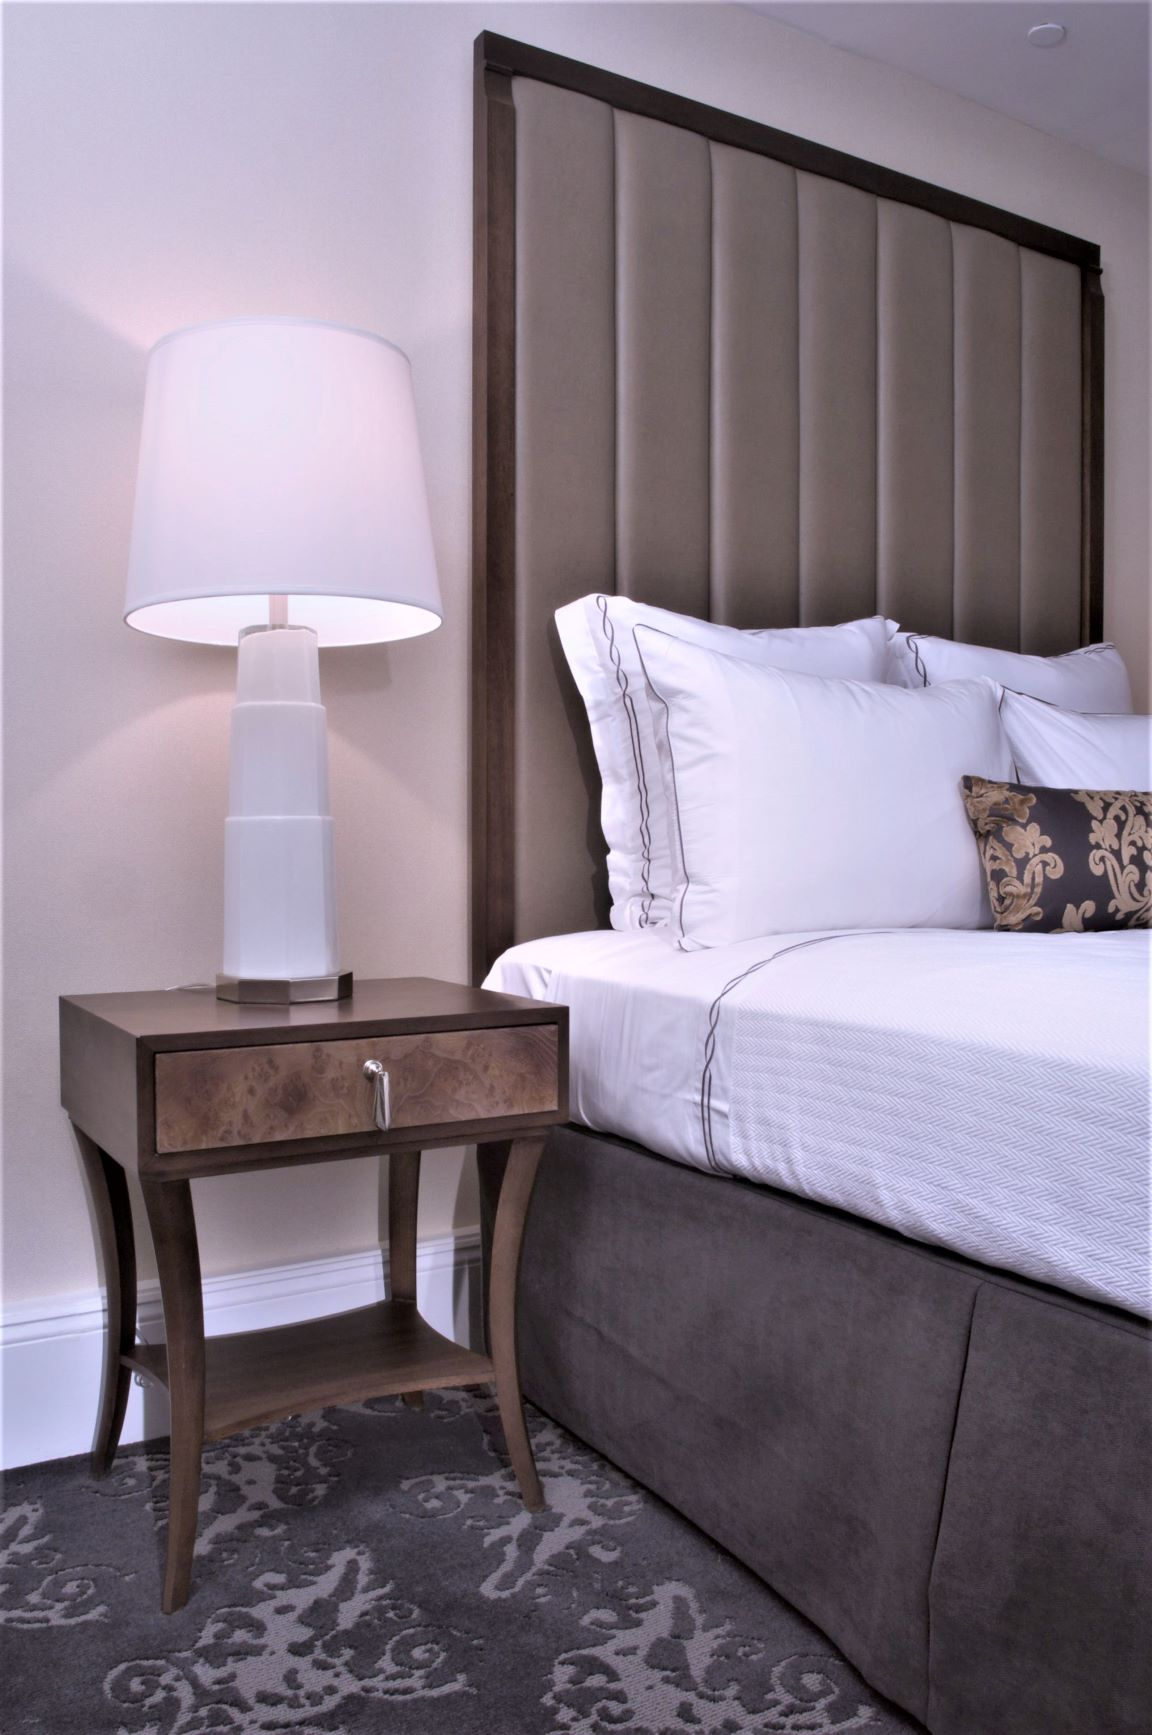 hotel headboard and night stand